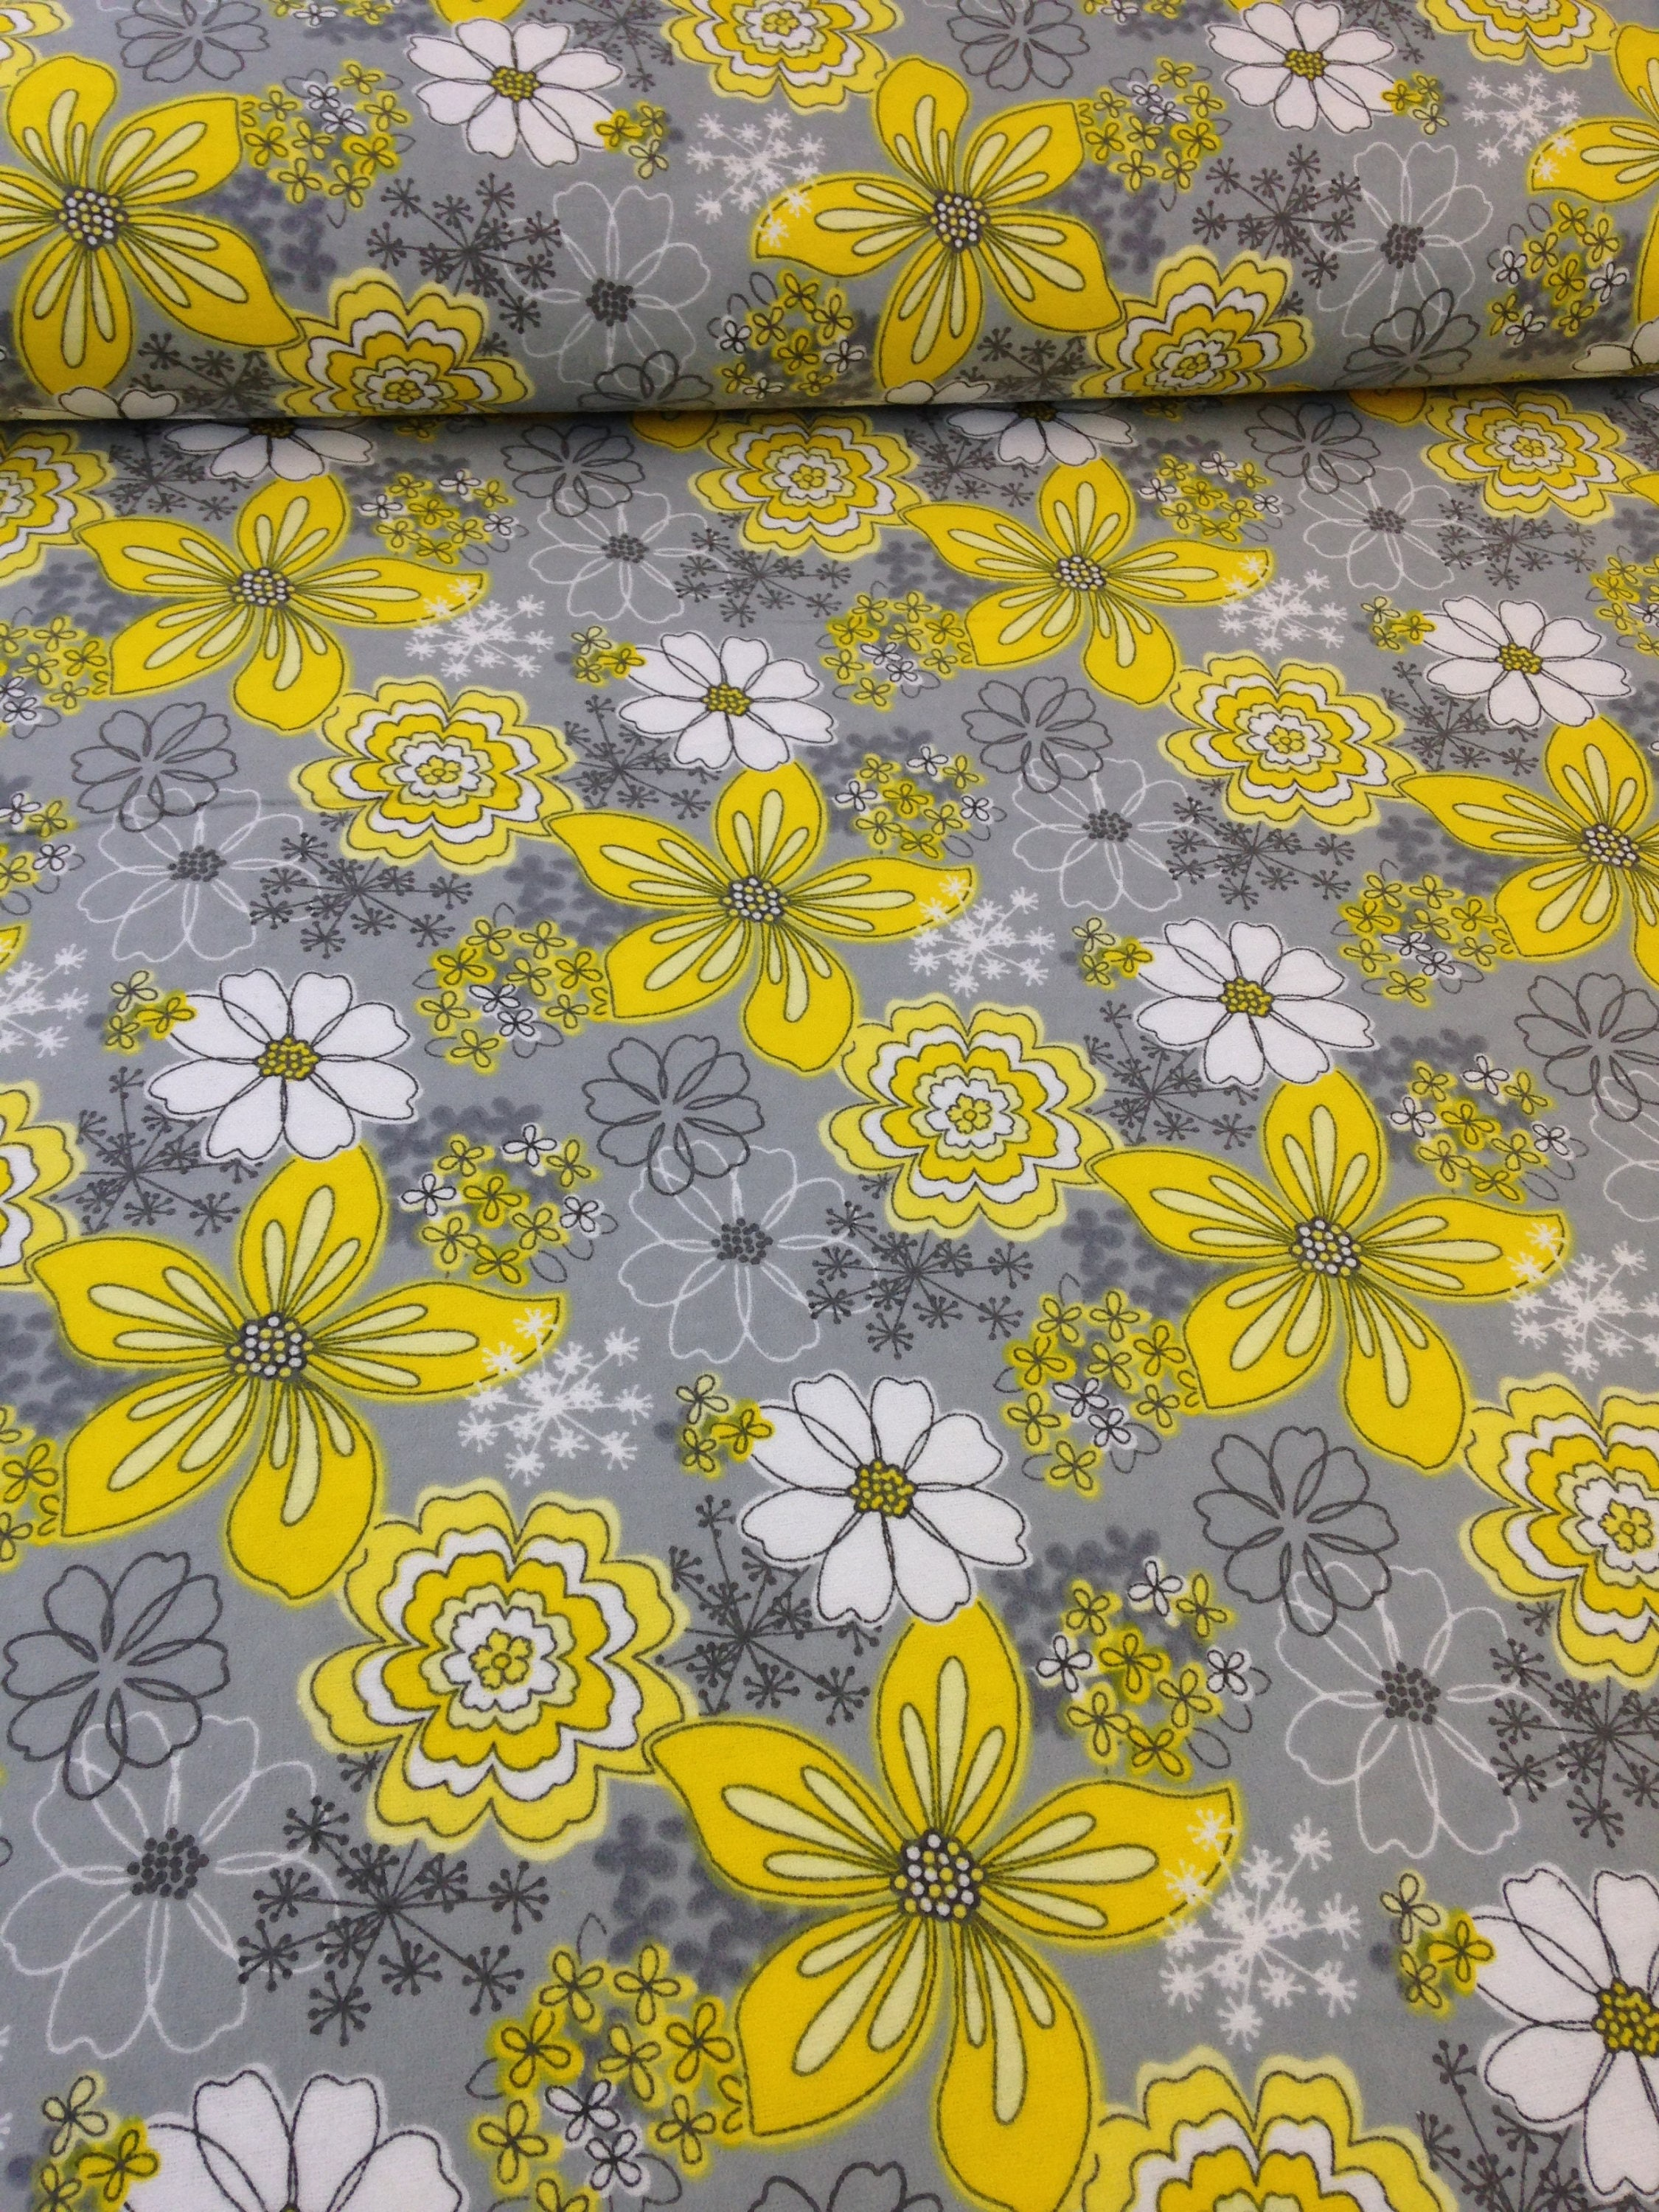 yellow gray white flower fabric white daisy camelot fabric etsy. Black Bedroom Furniture Sets. Home Design Ideas